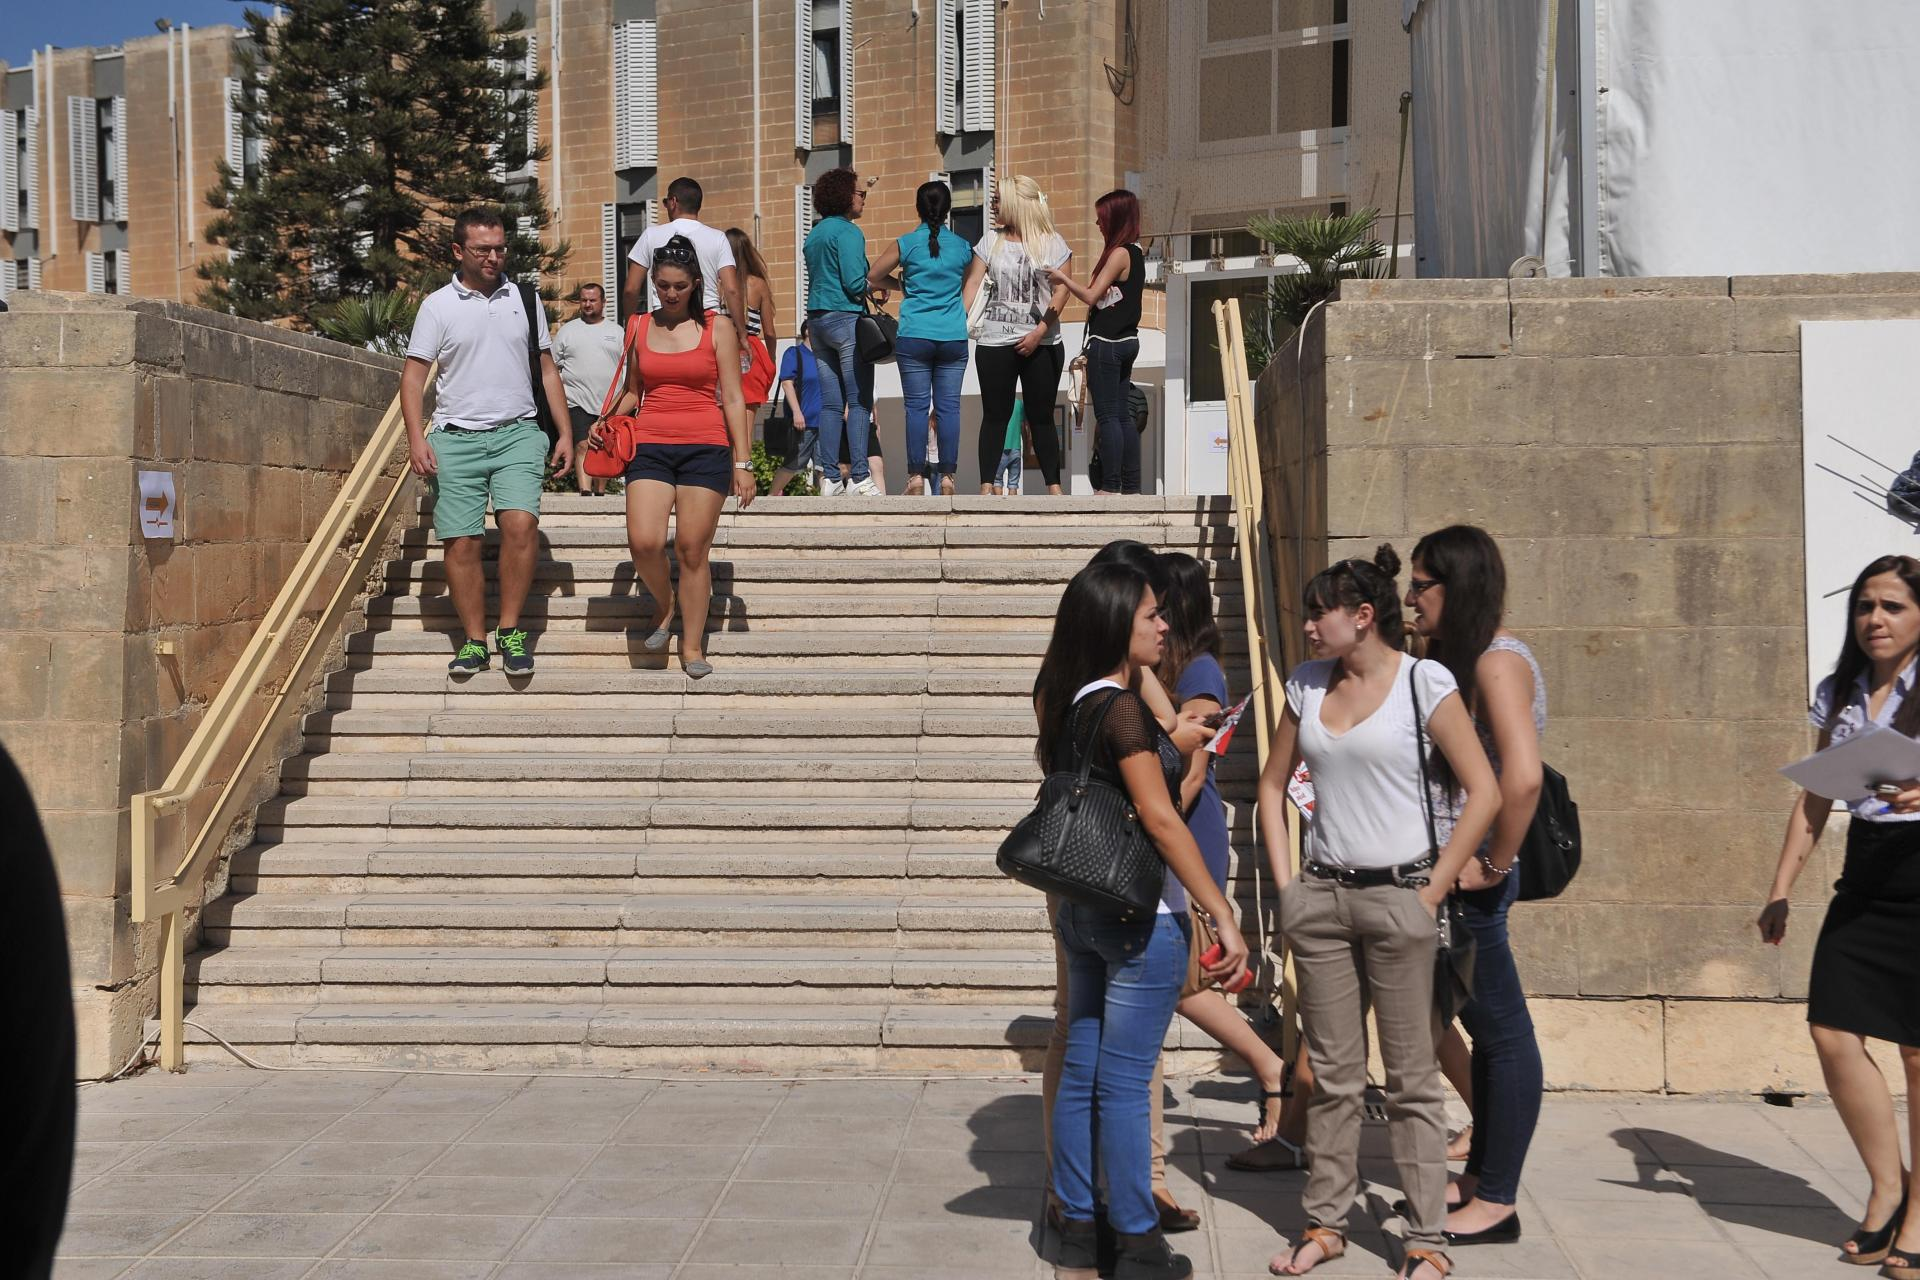 Busier days on the University of Malta's campus: Bernard Grech said working students should receive a full stipend. Photo: Matthew Mirabelli